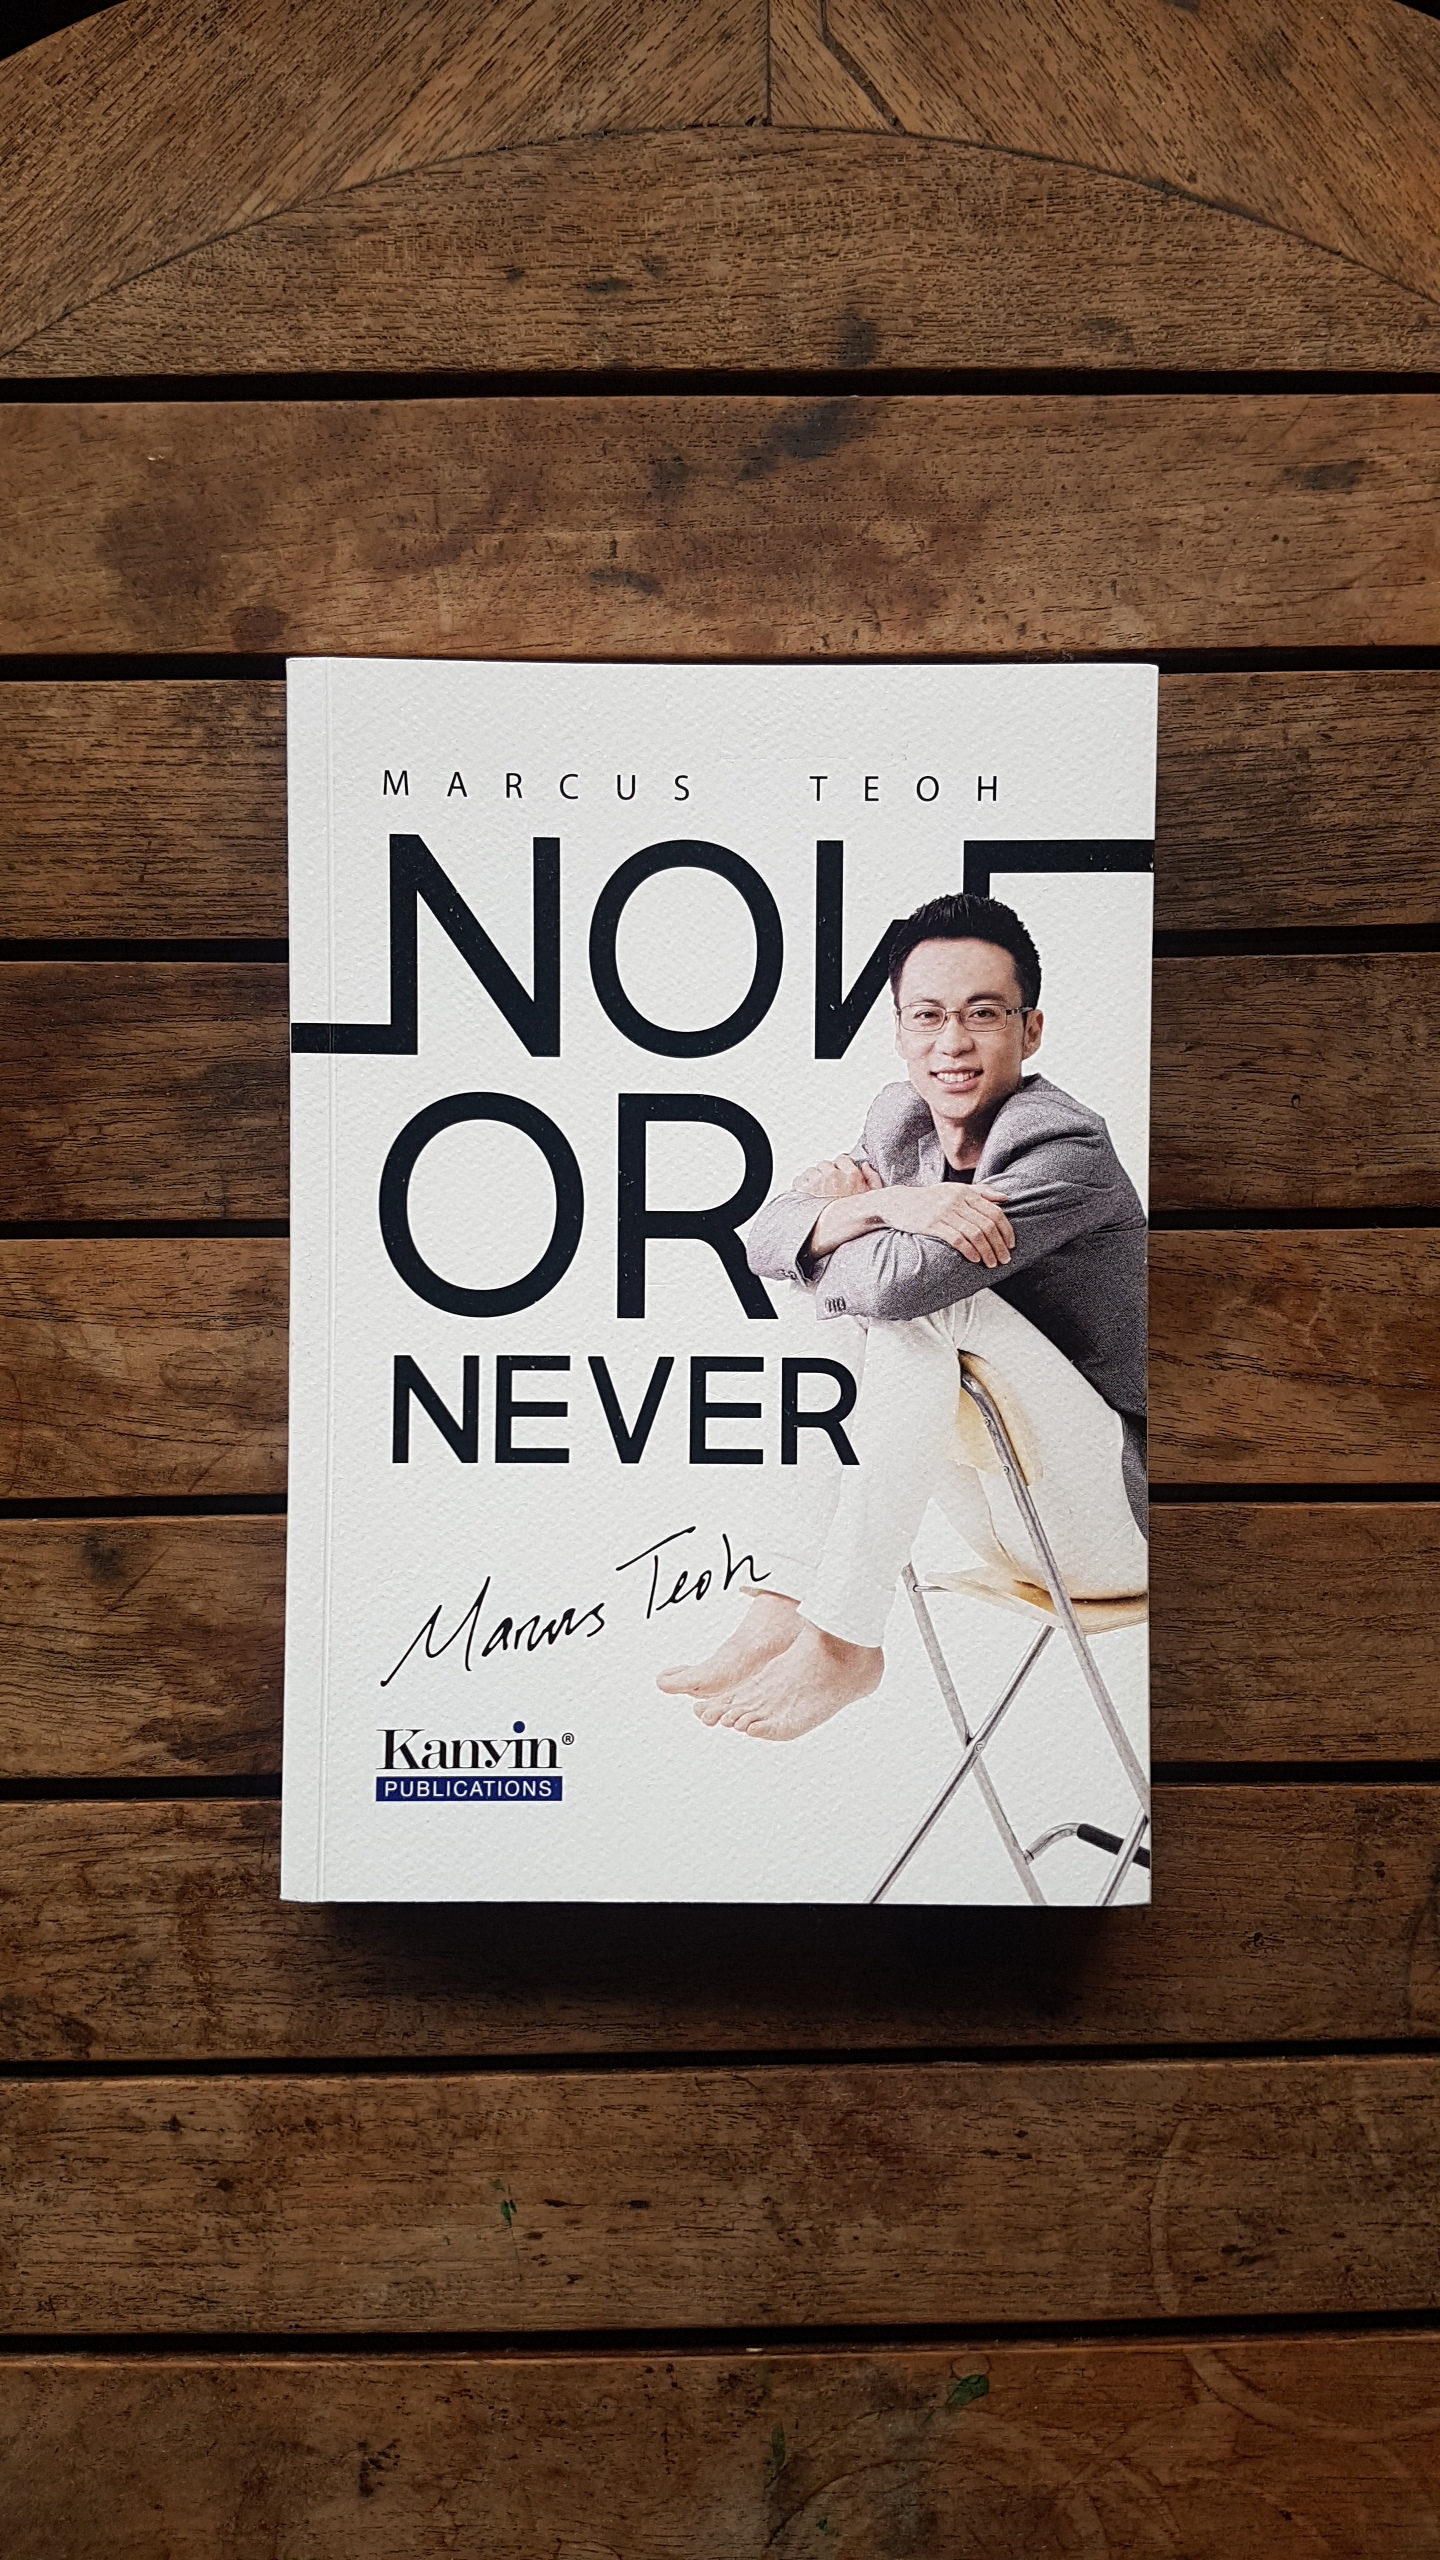 Now or Never by Marcus Teoh